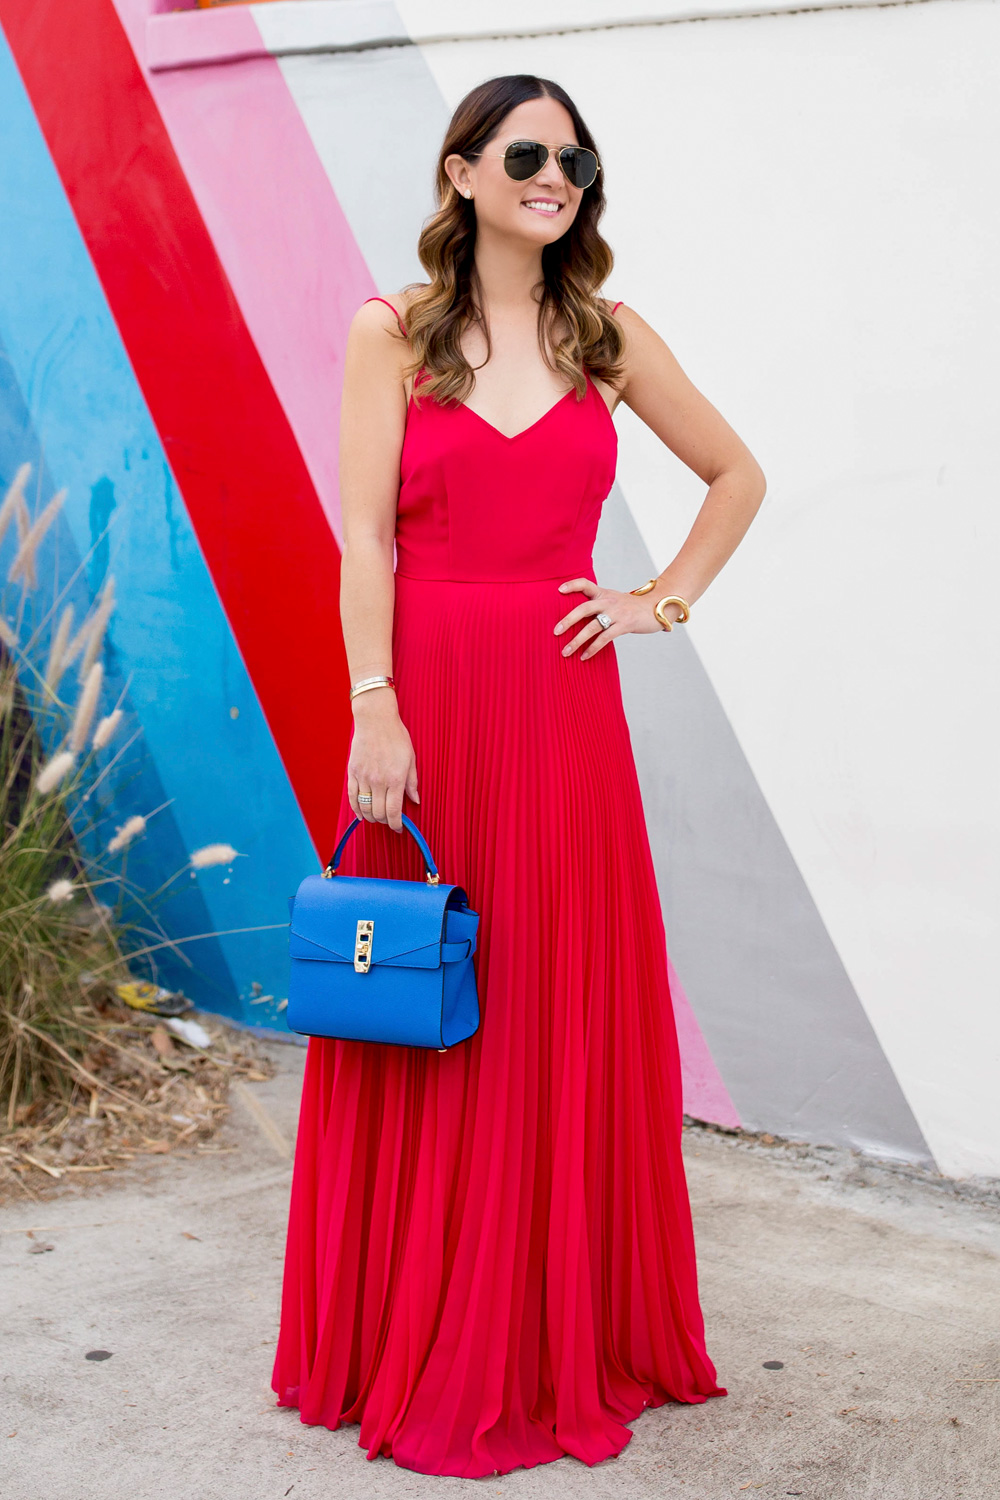 Jennifer Lake Style Charade in an ASOS bright pink pleated maxi dress, blue Henri Bendel Mini Uptown satchel, at a Los Angeles striped wall